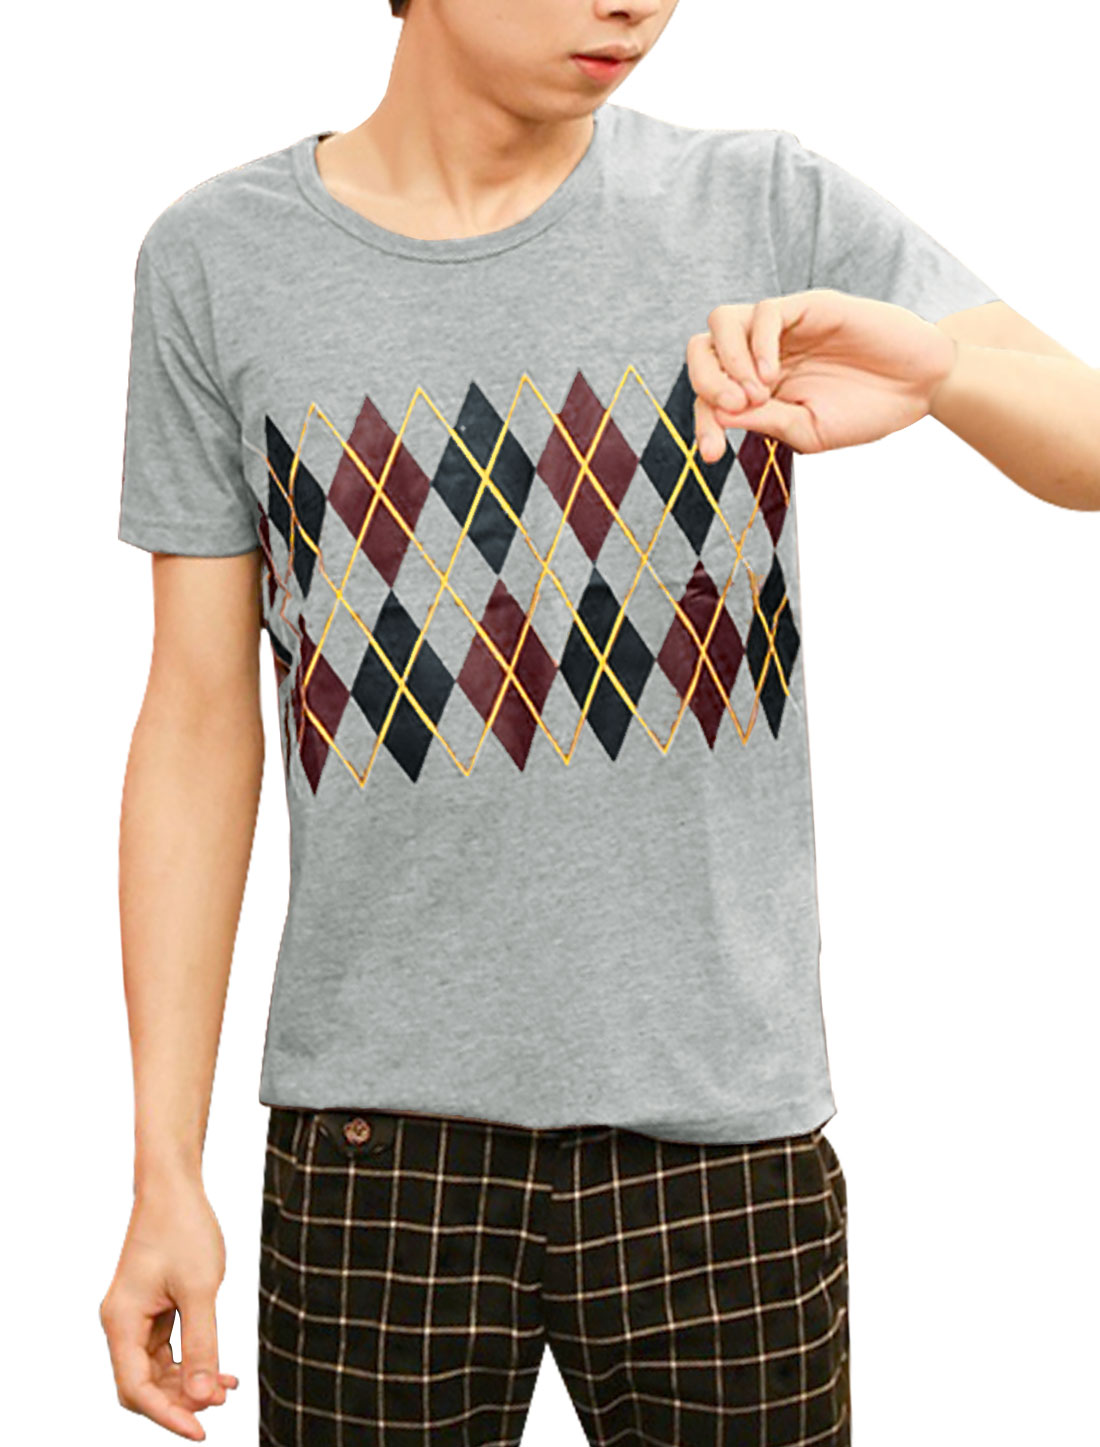 Men Slipover Short Sleeve Argyle Printed Trendy Tee Top Light Gray S